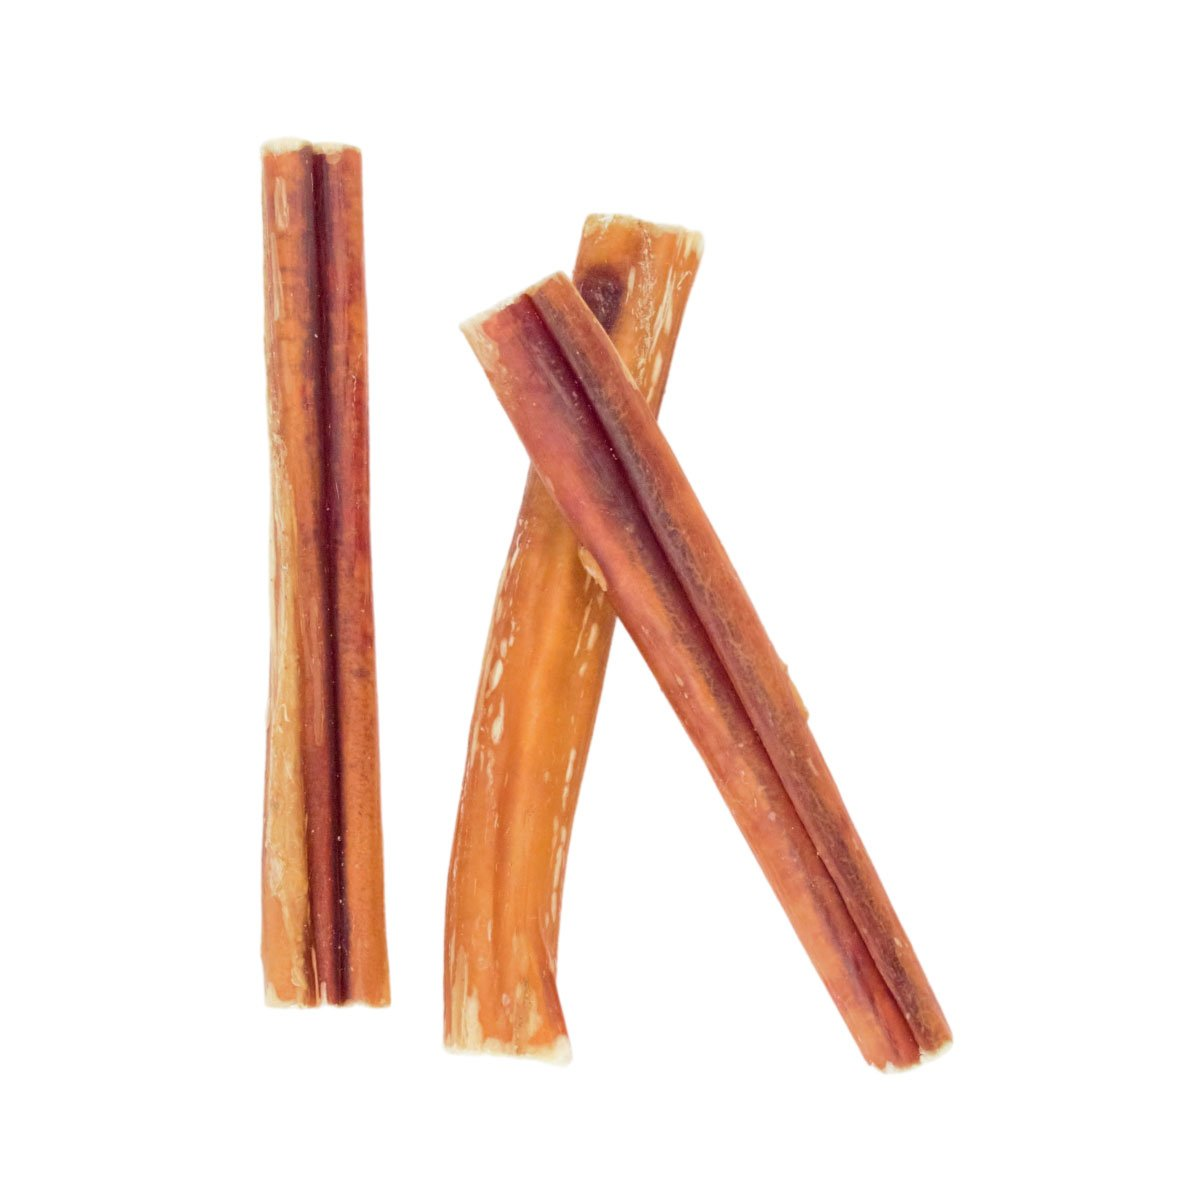 "Bully Stick 4"" Thick - 20 Pack"